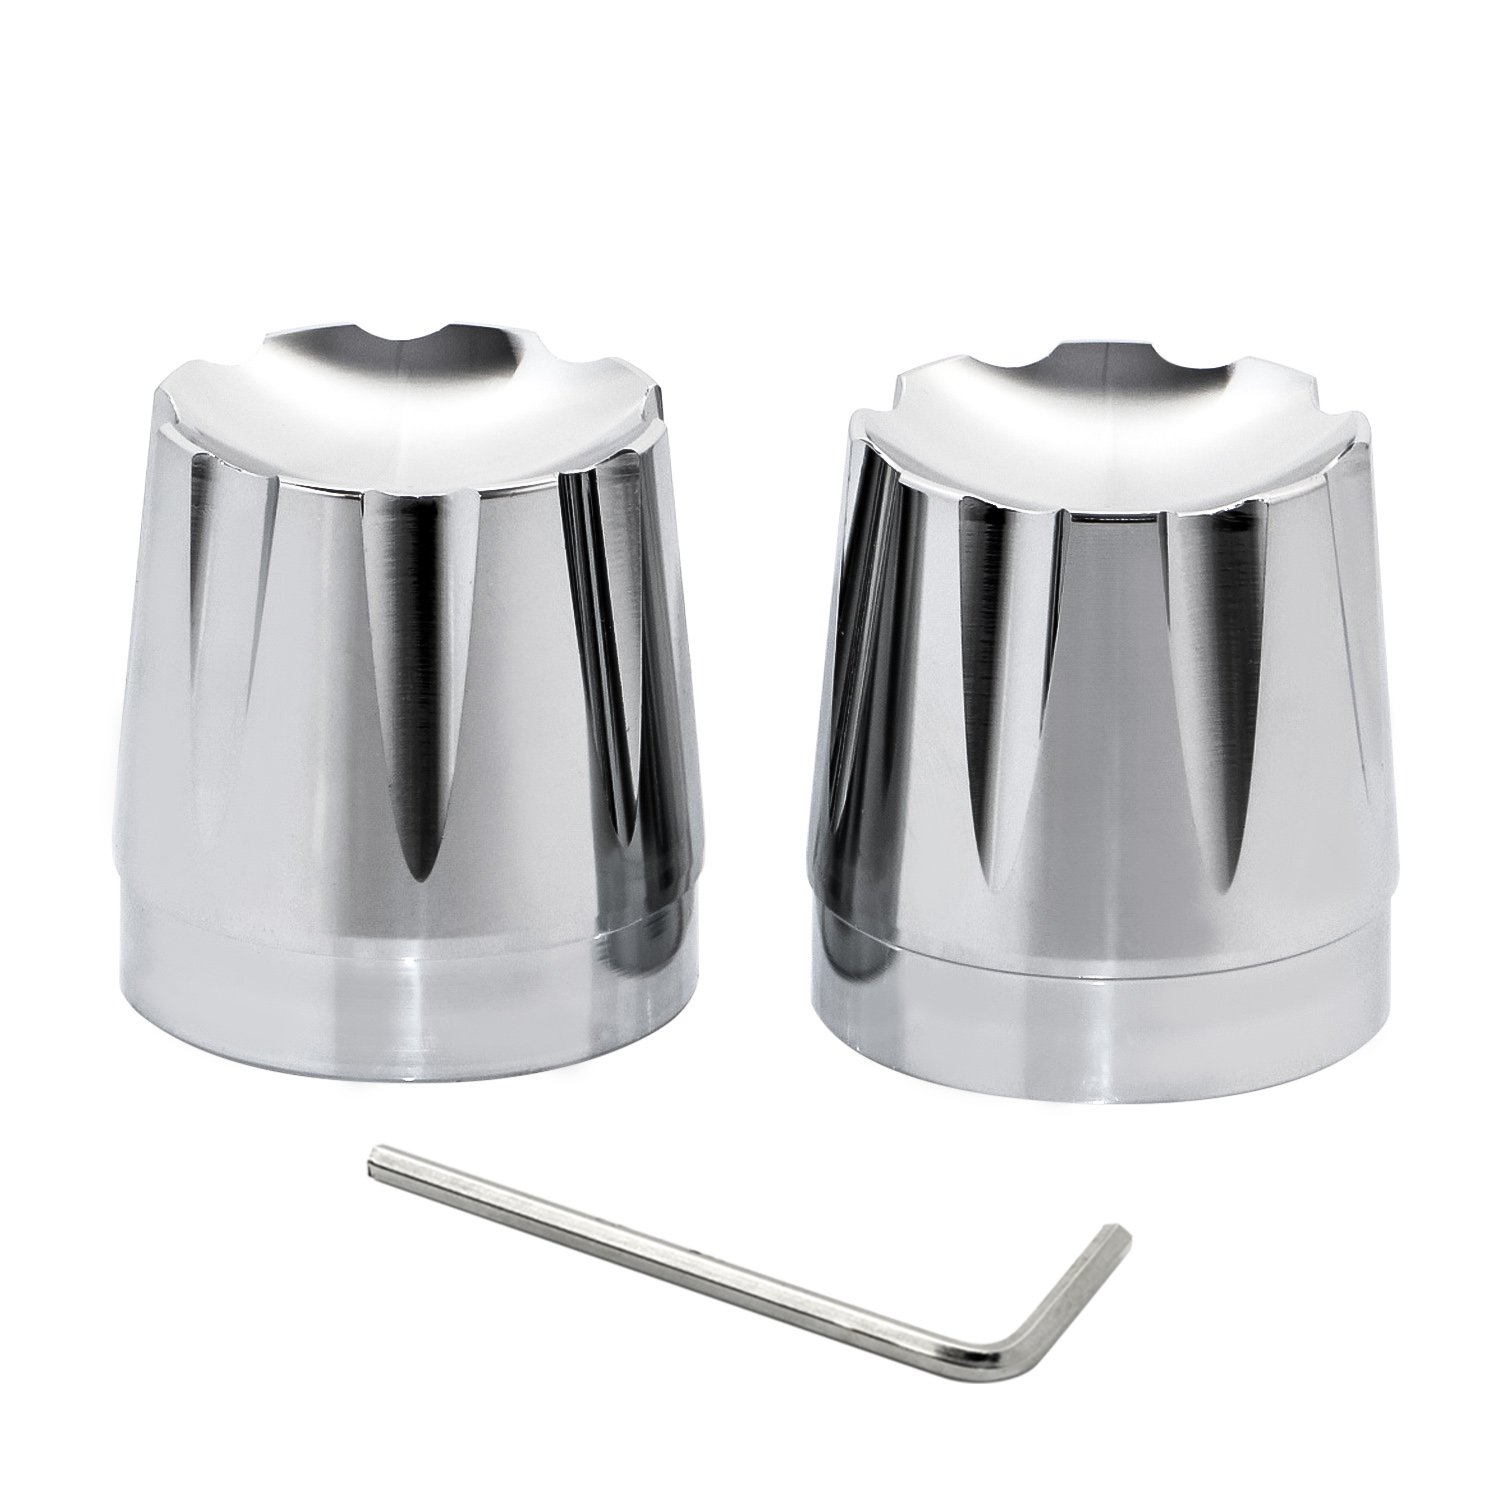 Senkauto Front Axle Cap Nut Cover For Harley Sportster Touring Dyna Touring Softail Electra Street Glide (Chrome 04)